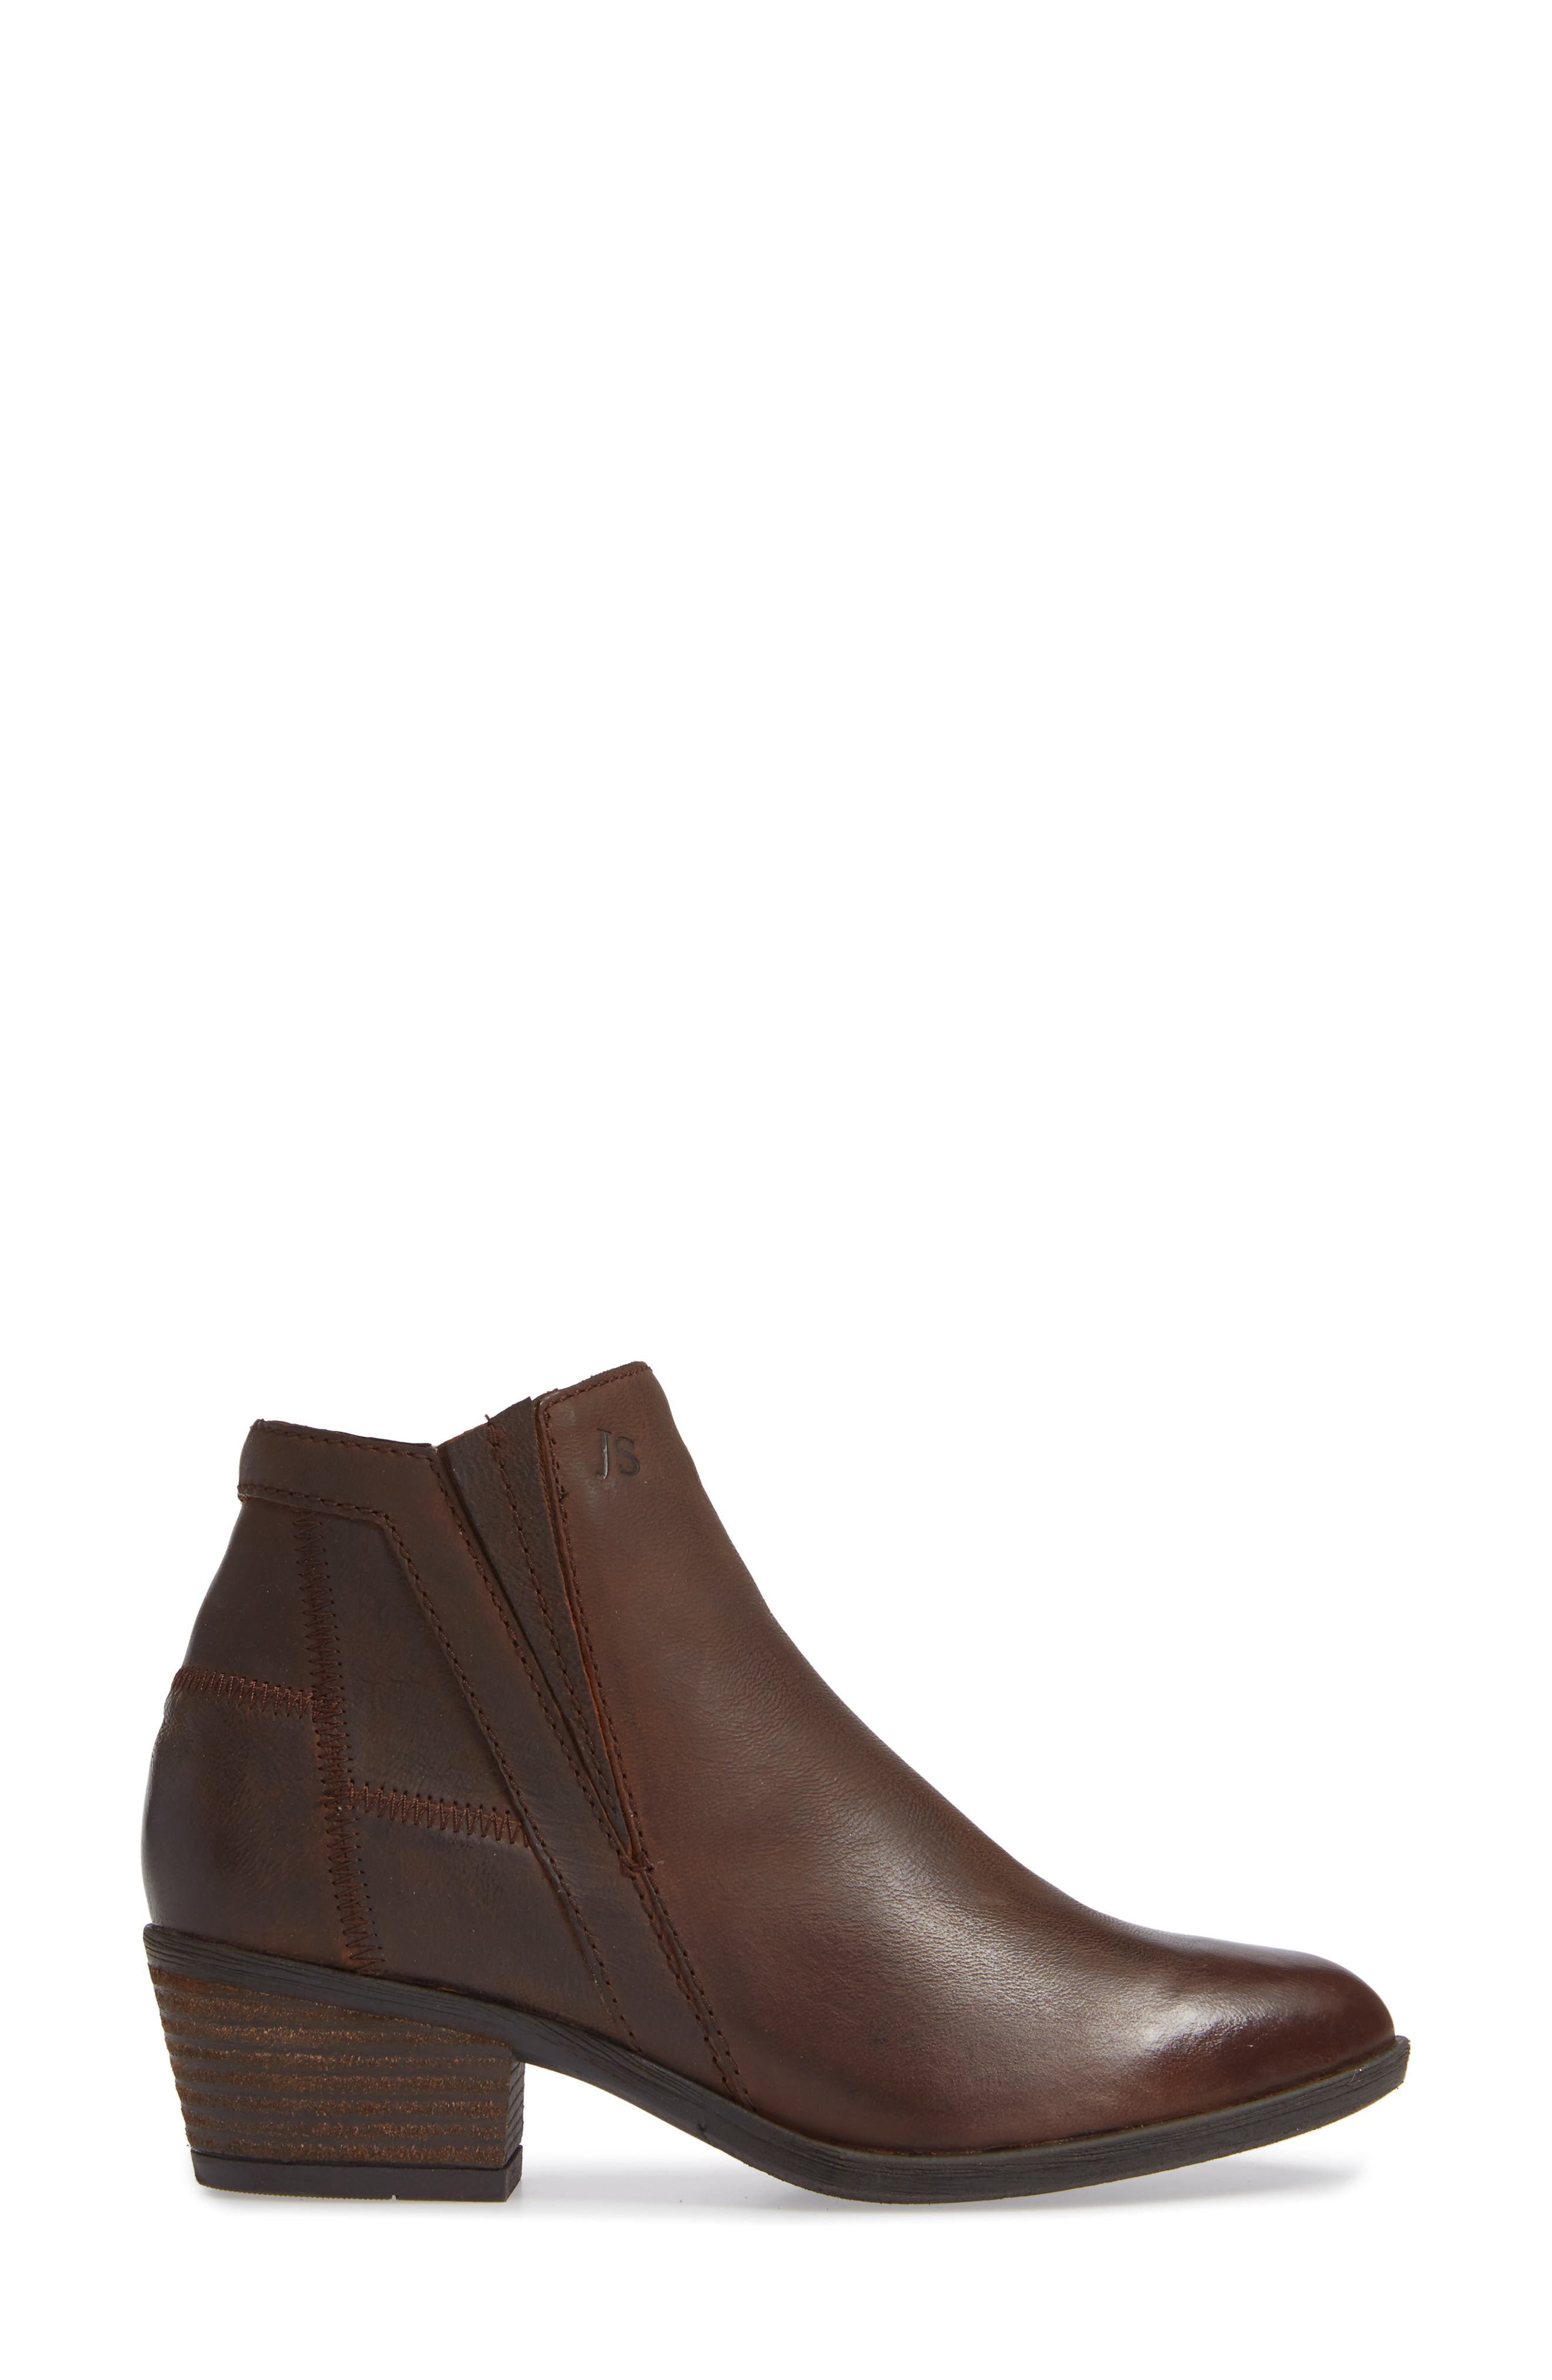 JOSEF SEIBEL,                             Daphne Bootie,                             Alternate thumbnail 3, color,                             MORO WASHED LEATHER